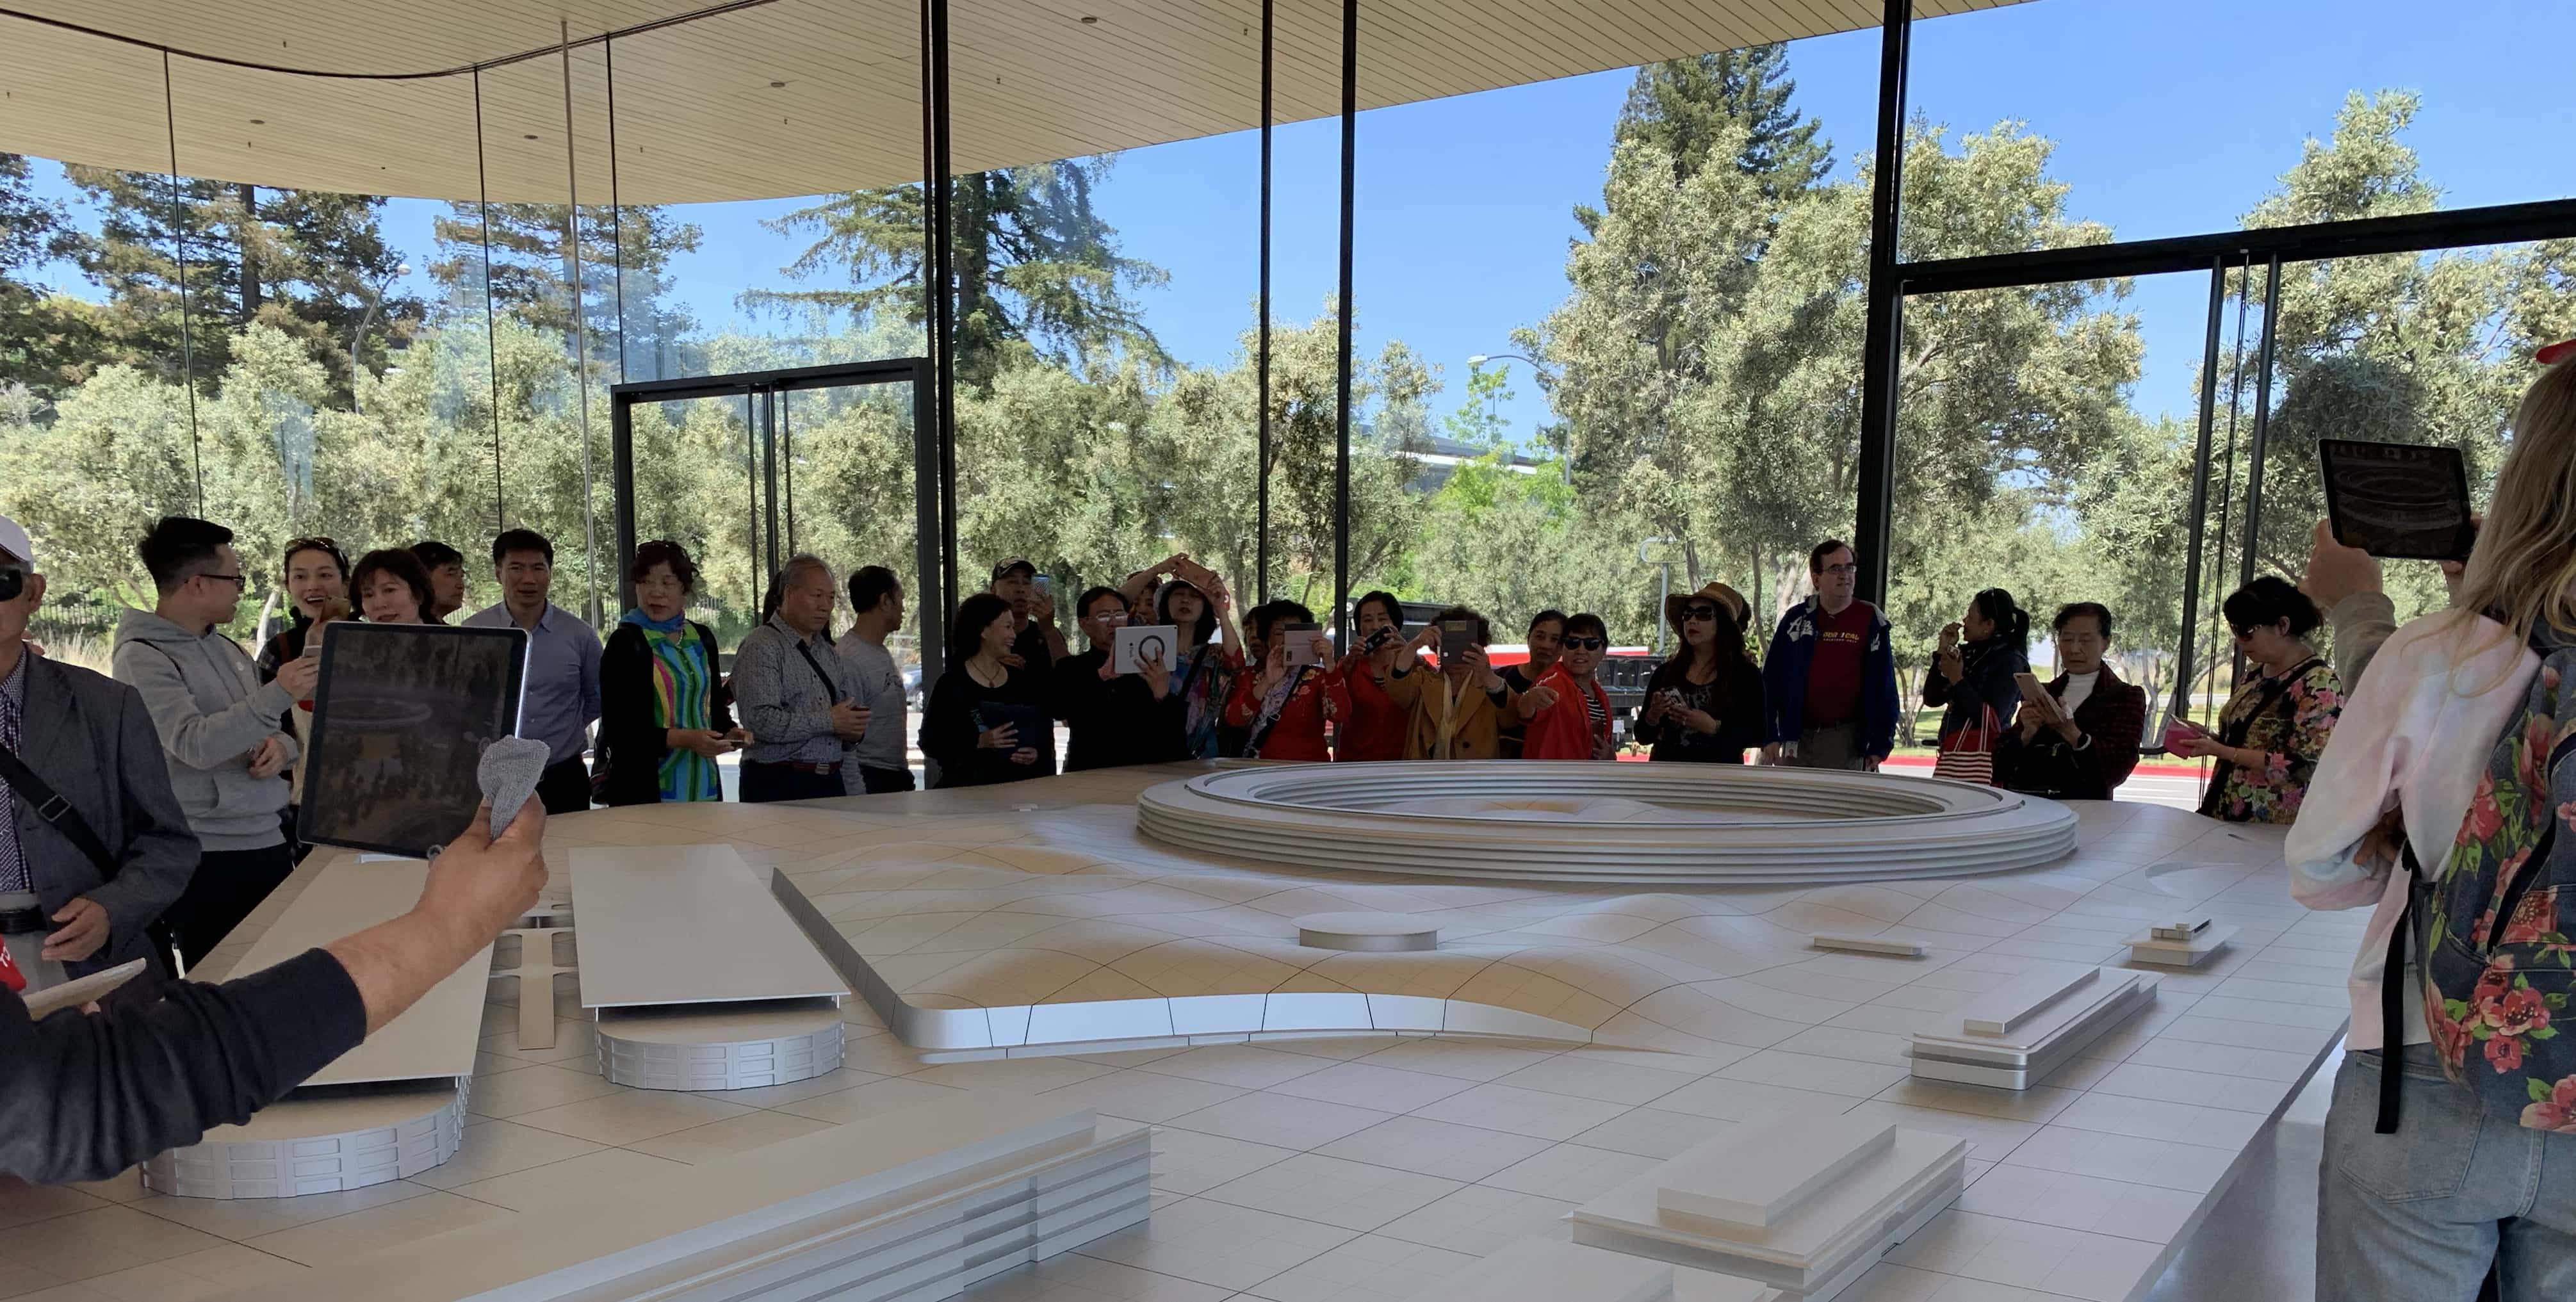 At Apple Park, tourists already use iPads to see virtual landmarks pop up on a model of the campus.